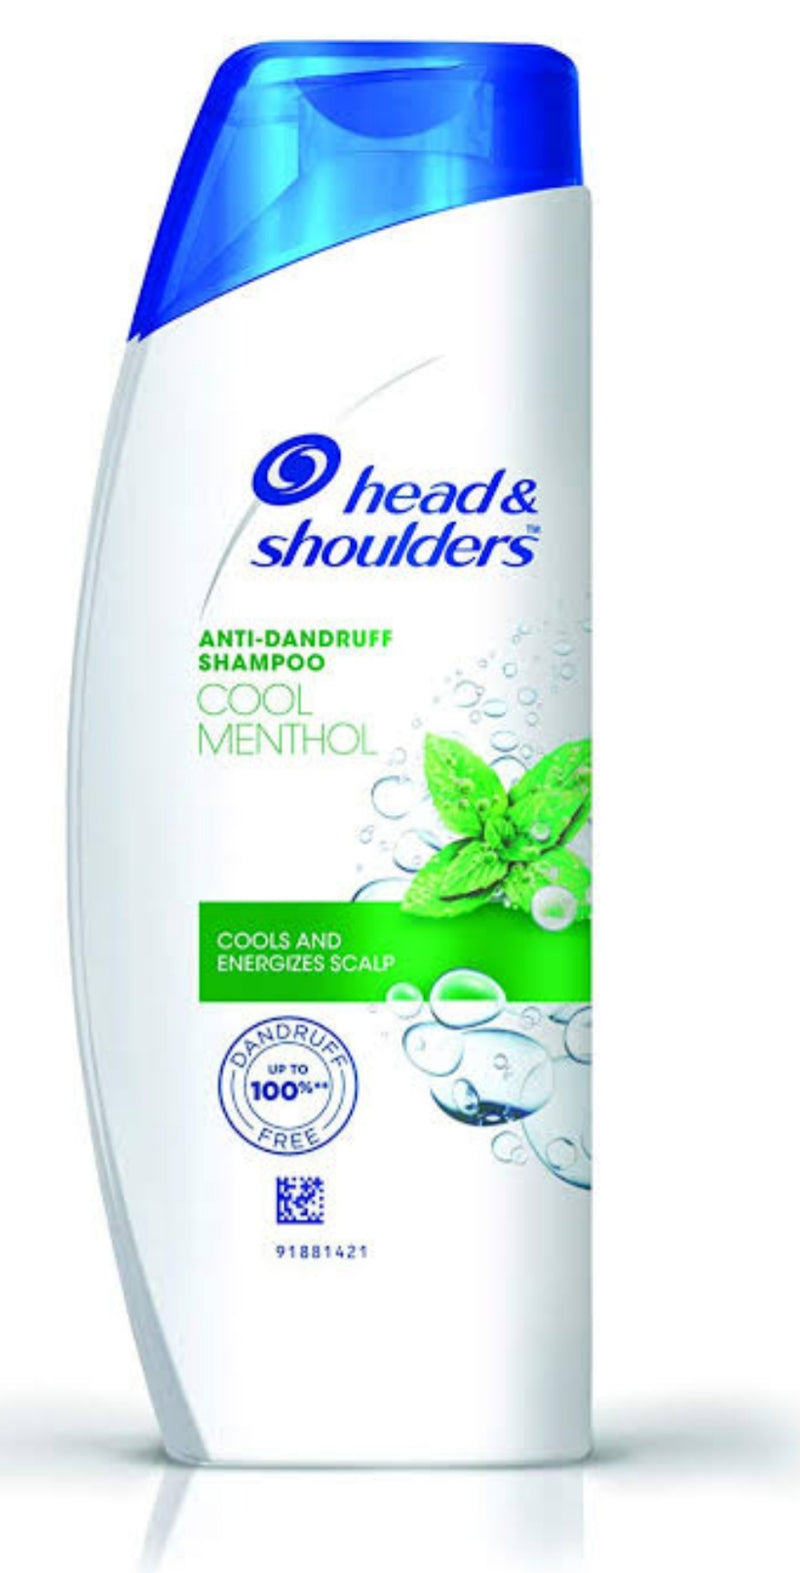 Head & Shoulders Cool Menthol Anti Dandruff Shampoo ( Cools And Energizes Scalp), 340 ml